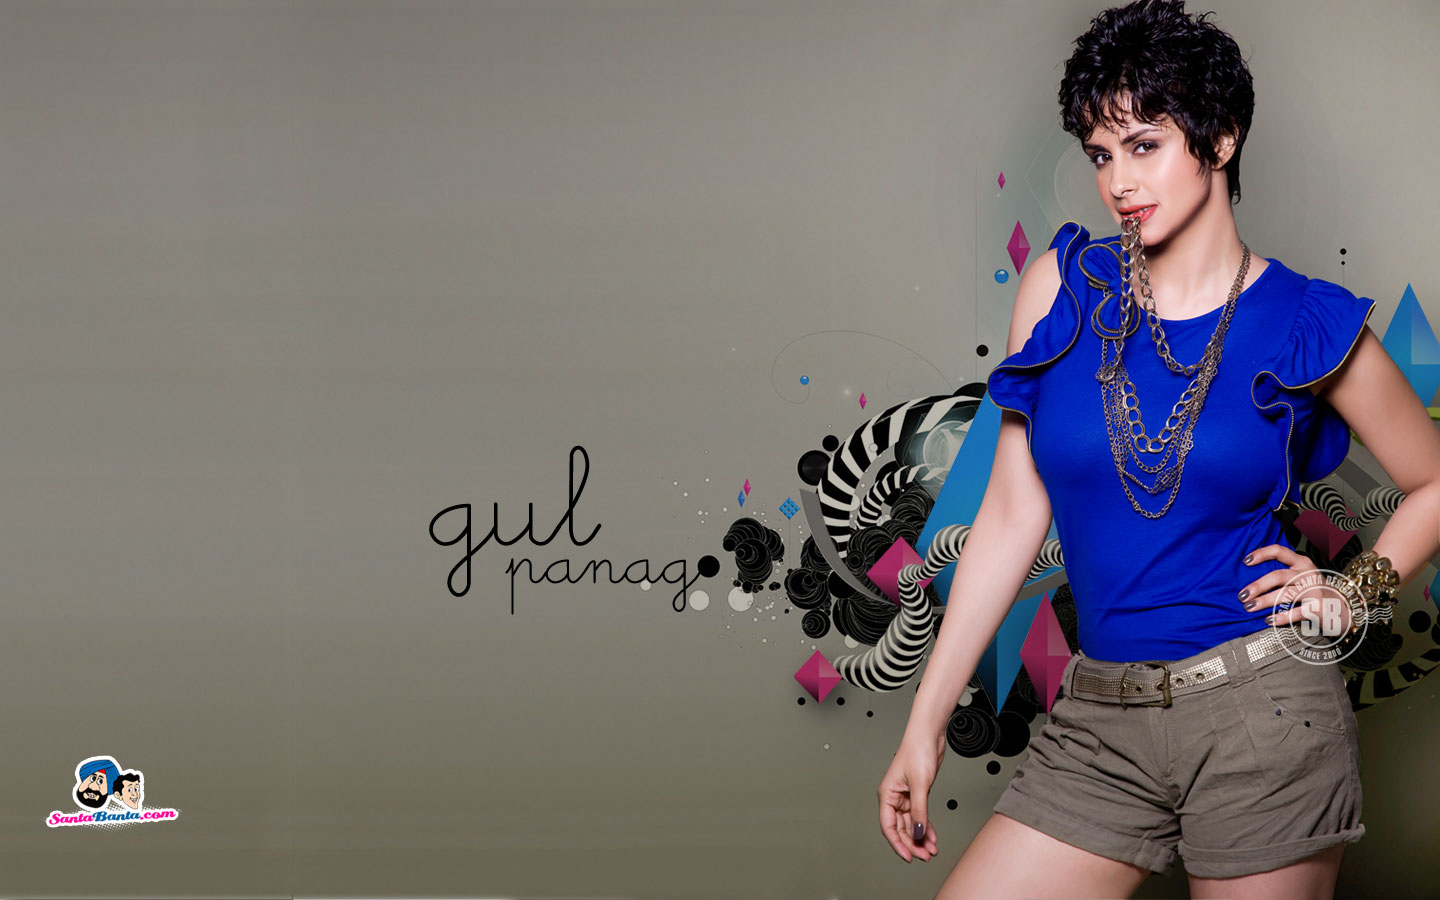 1 gul panag gul panag sexy indian sexy actress topless sexy big boobs gul panag sexy tits boobs high quality wallpapers latest 2011 hot hd collection indian babes nude indian actress  Free Porn Tags: 'Free Forced